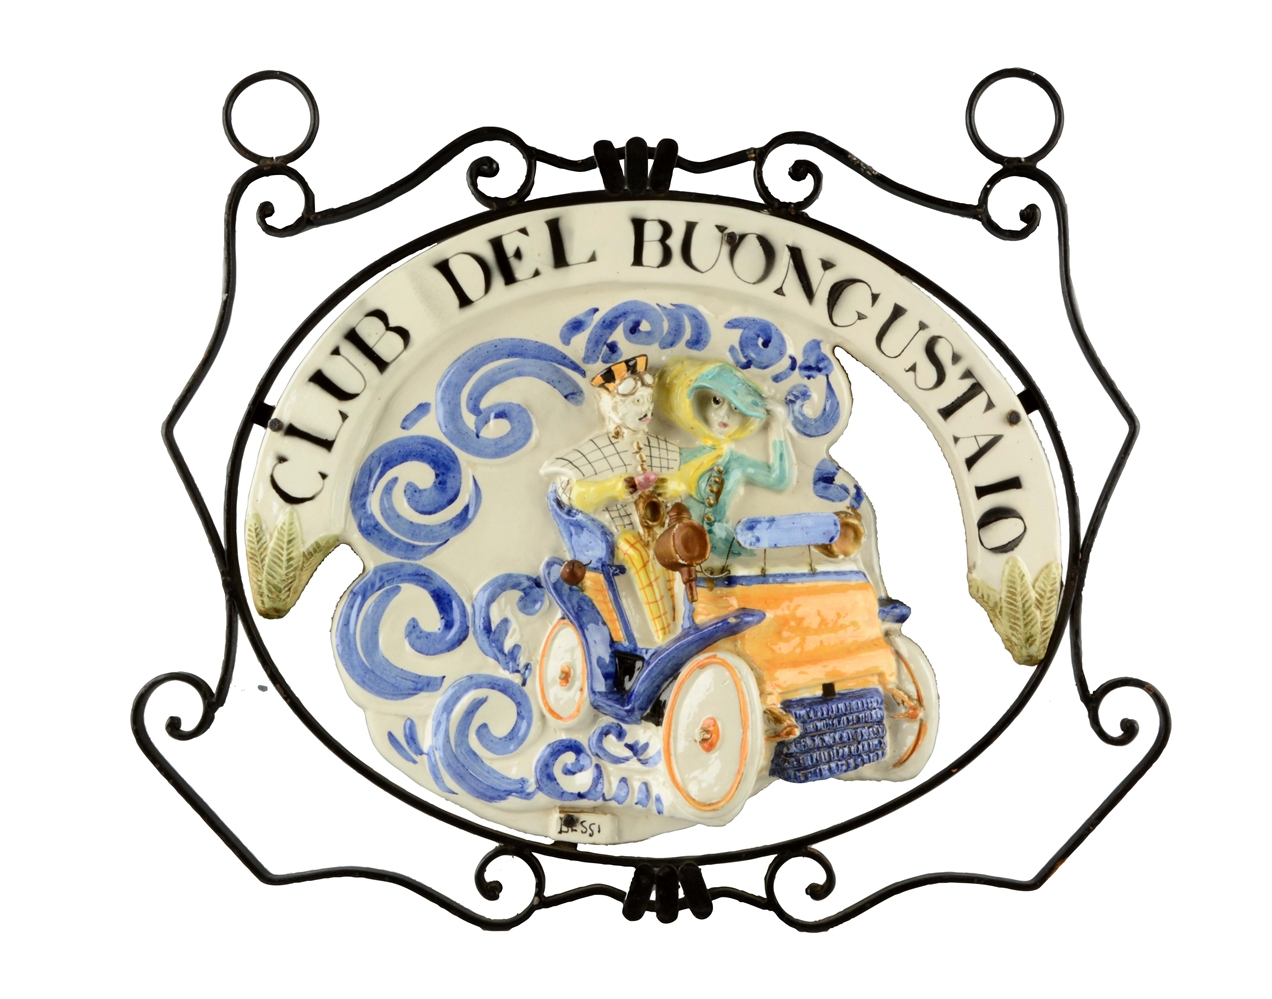 Club Del Buongusta Ceramic Sign.